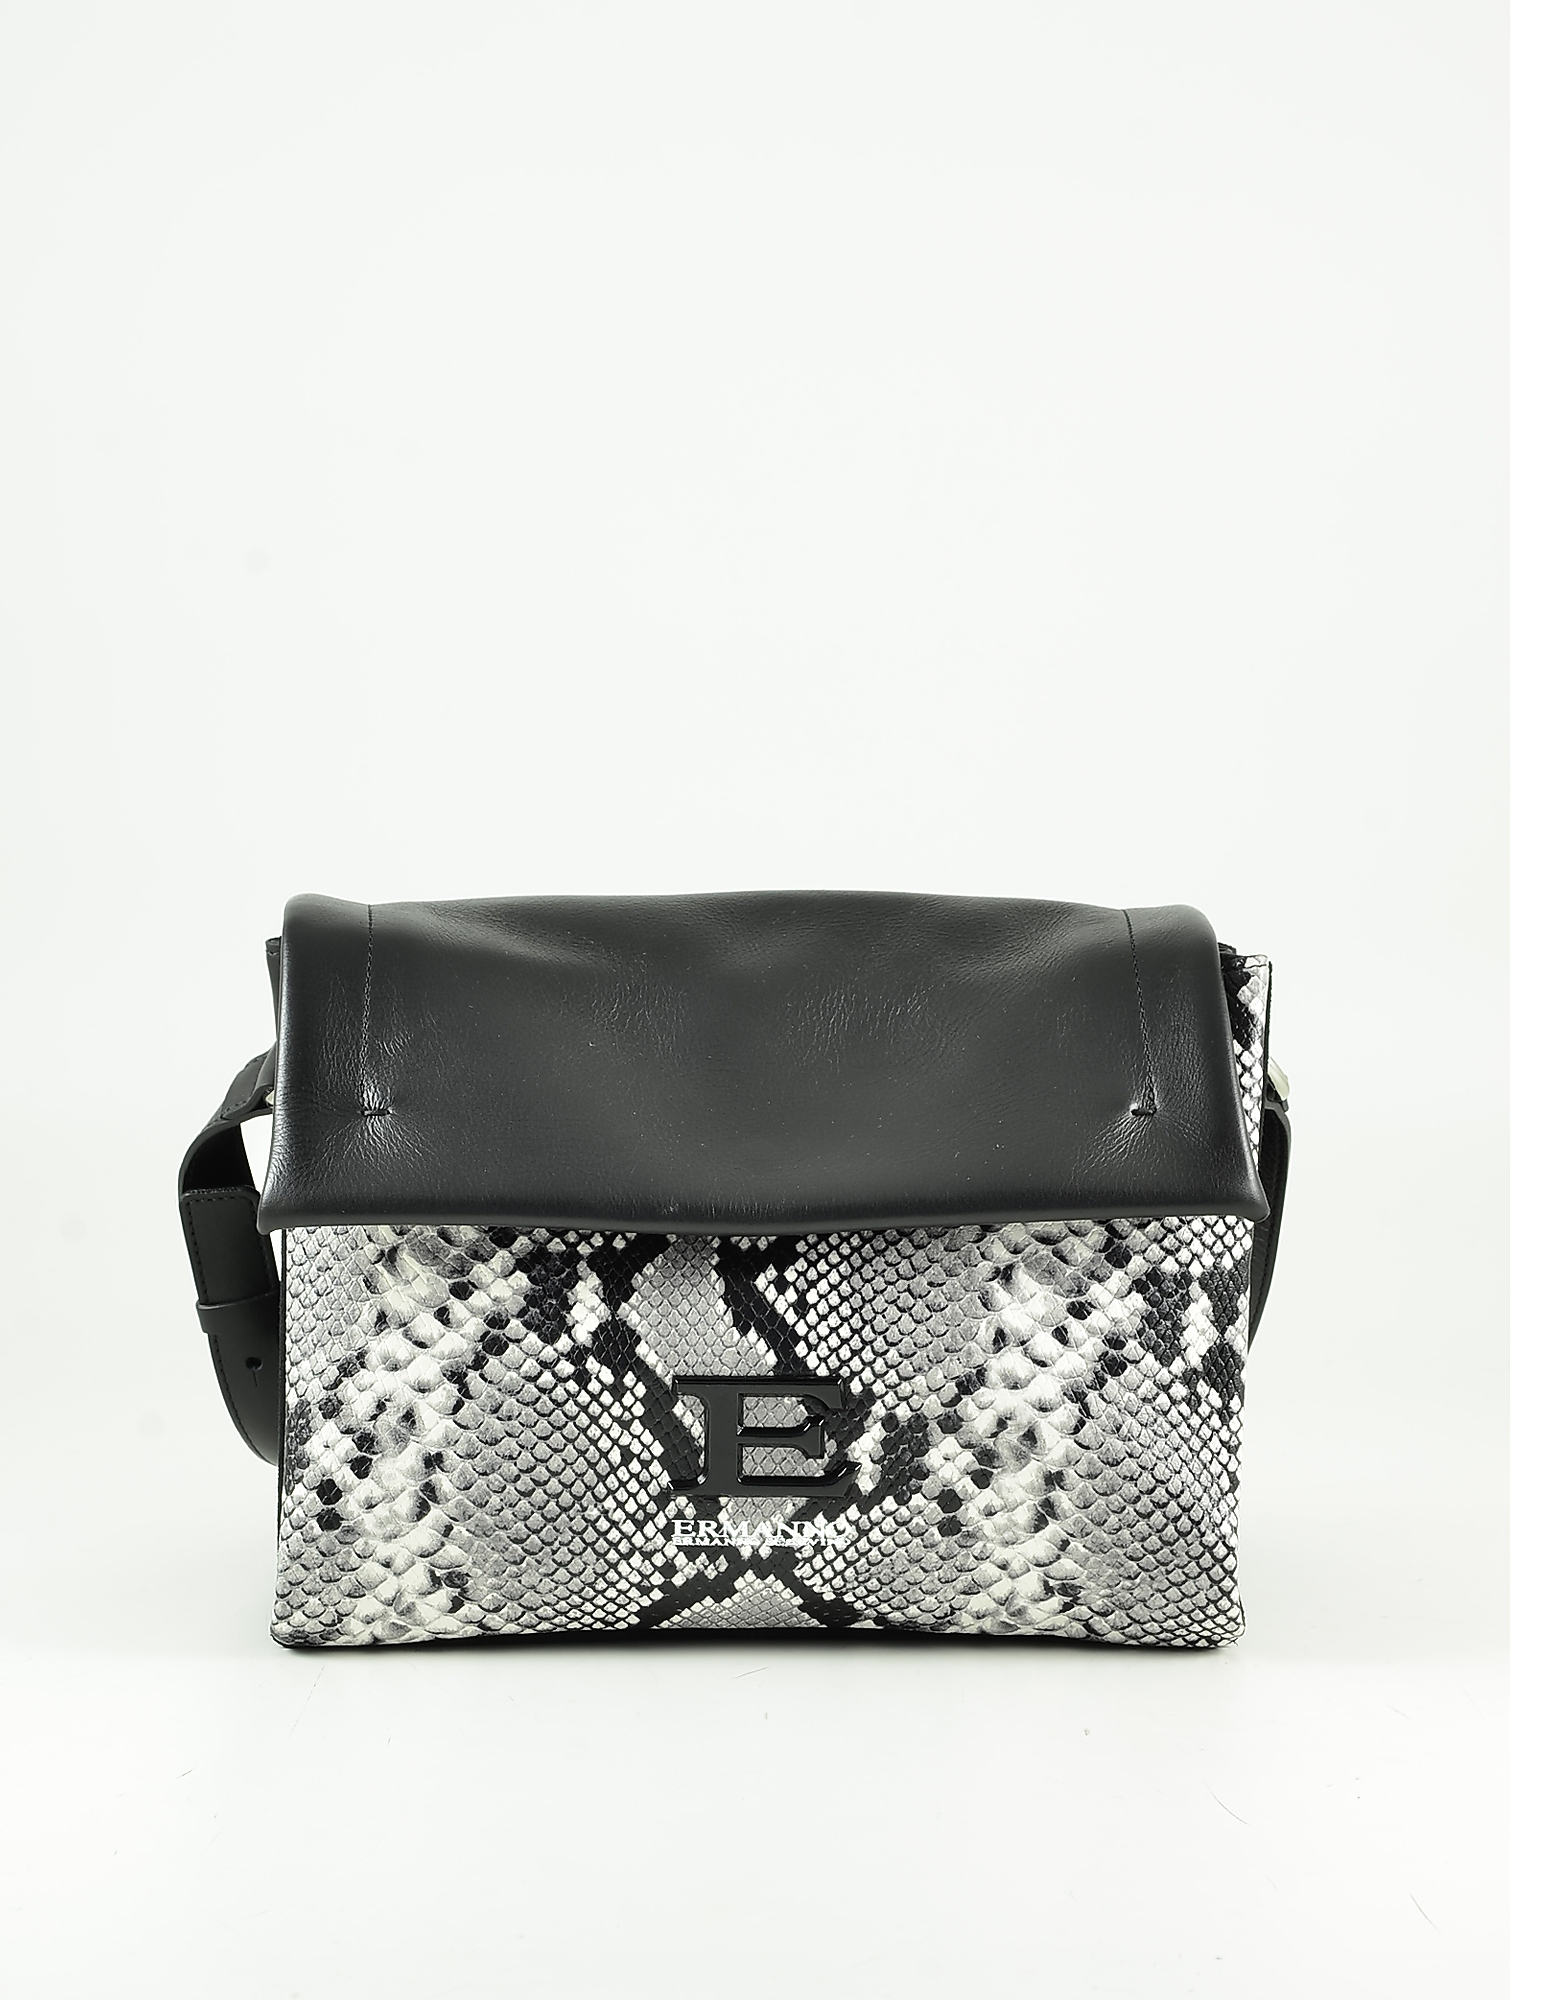 Ermanno Scervino Stone Gray Python Embossed Leather Shoulder Bag